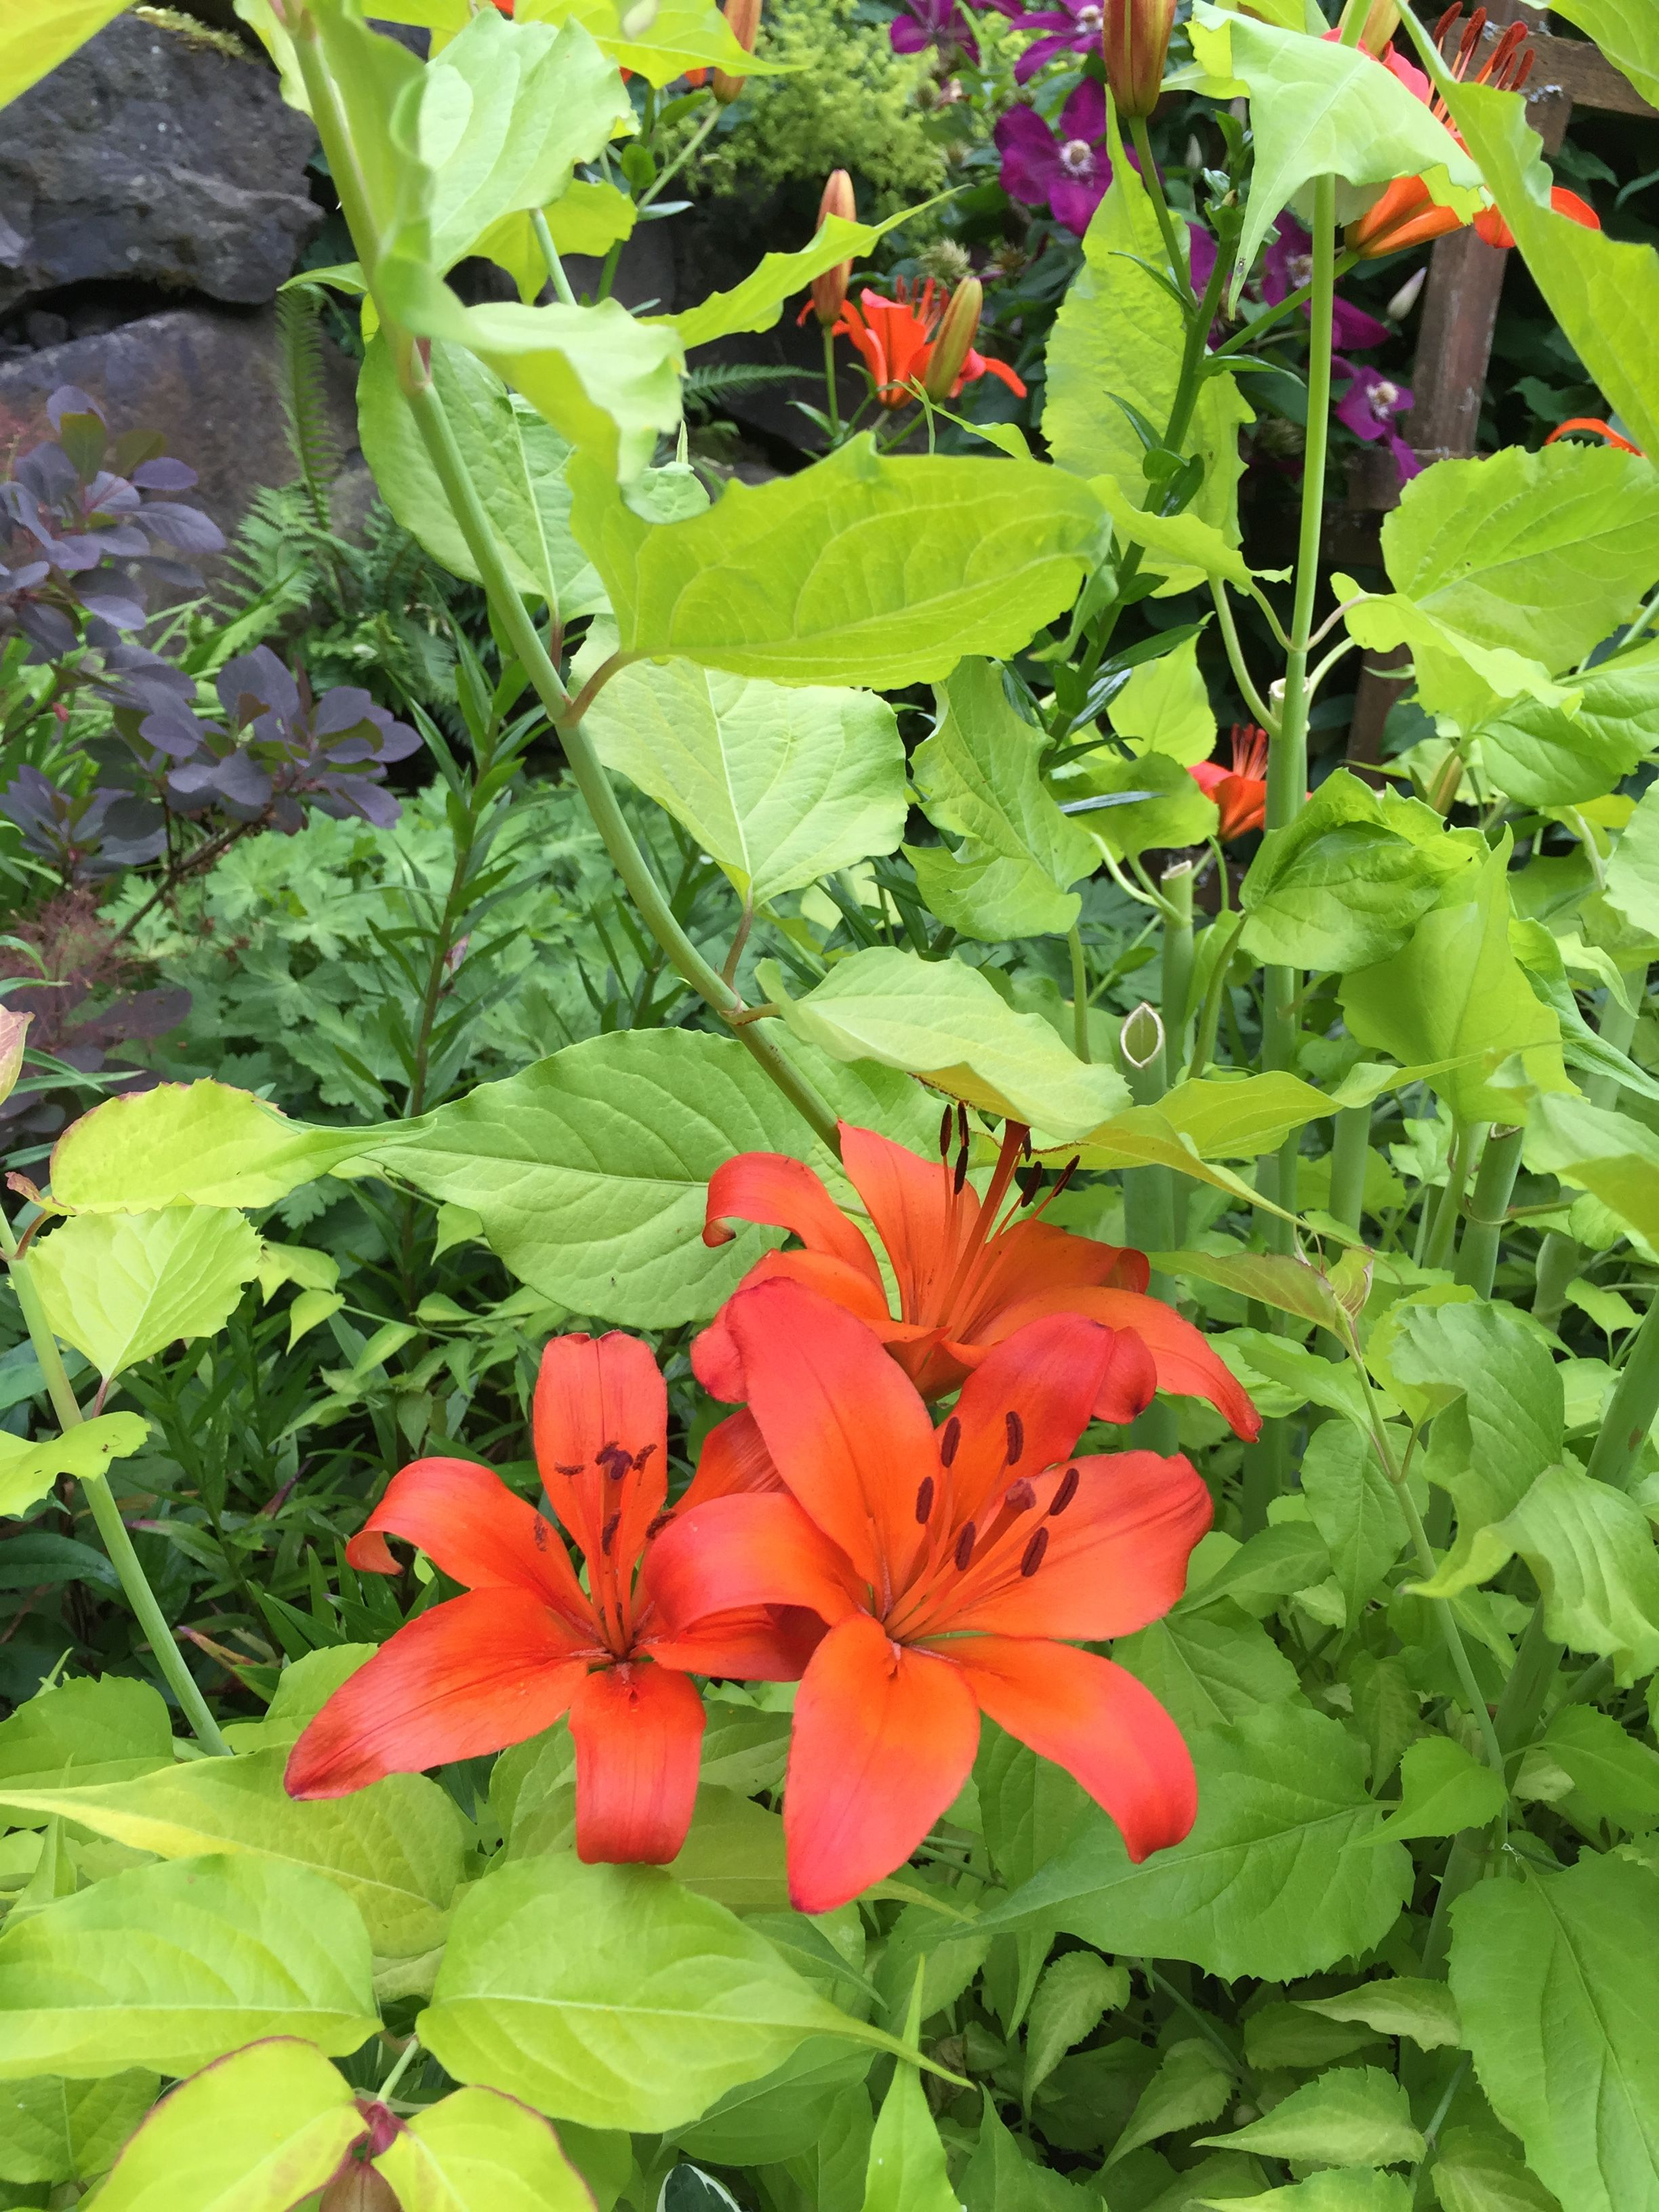 Bright orange lily with himalayan honeysuckle they each